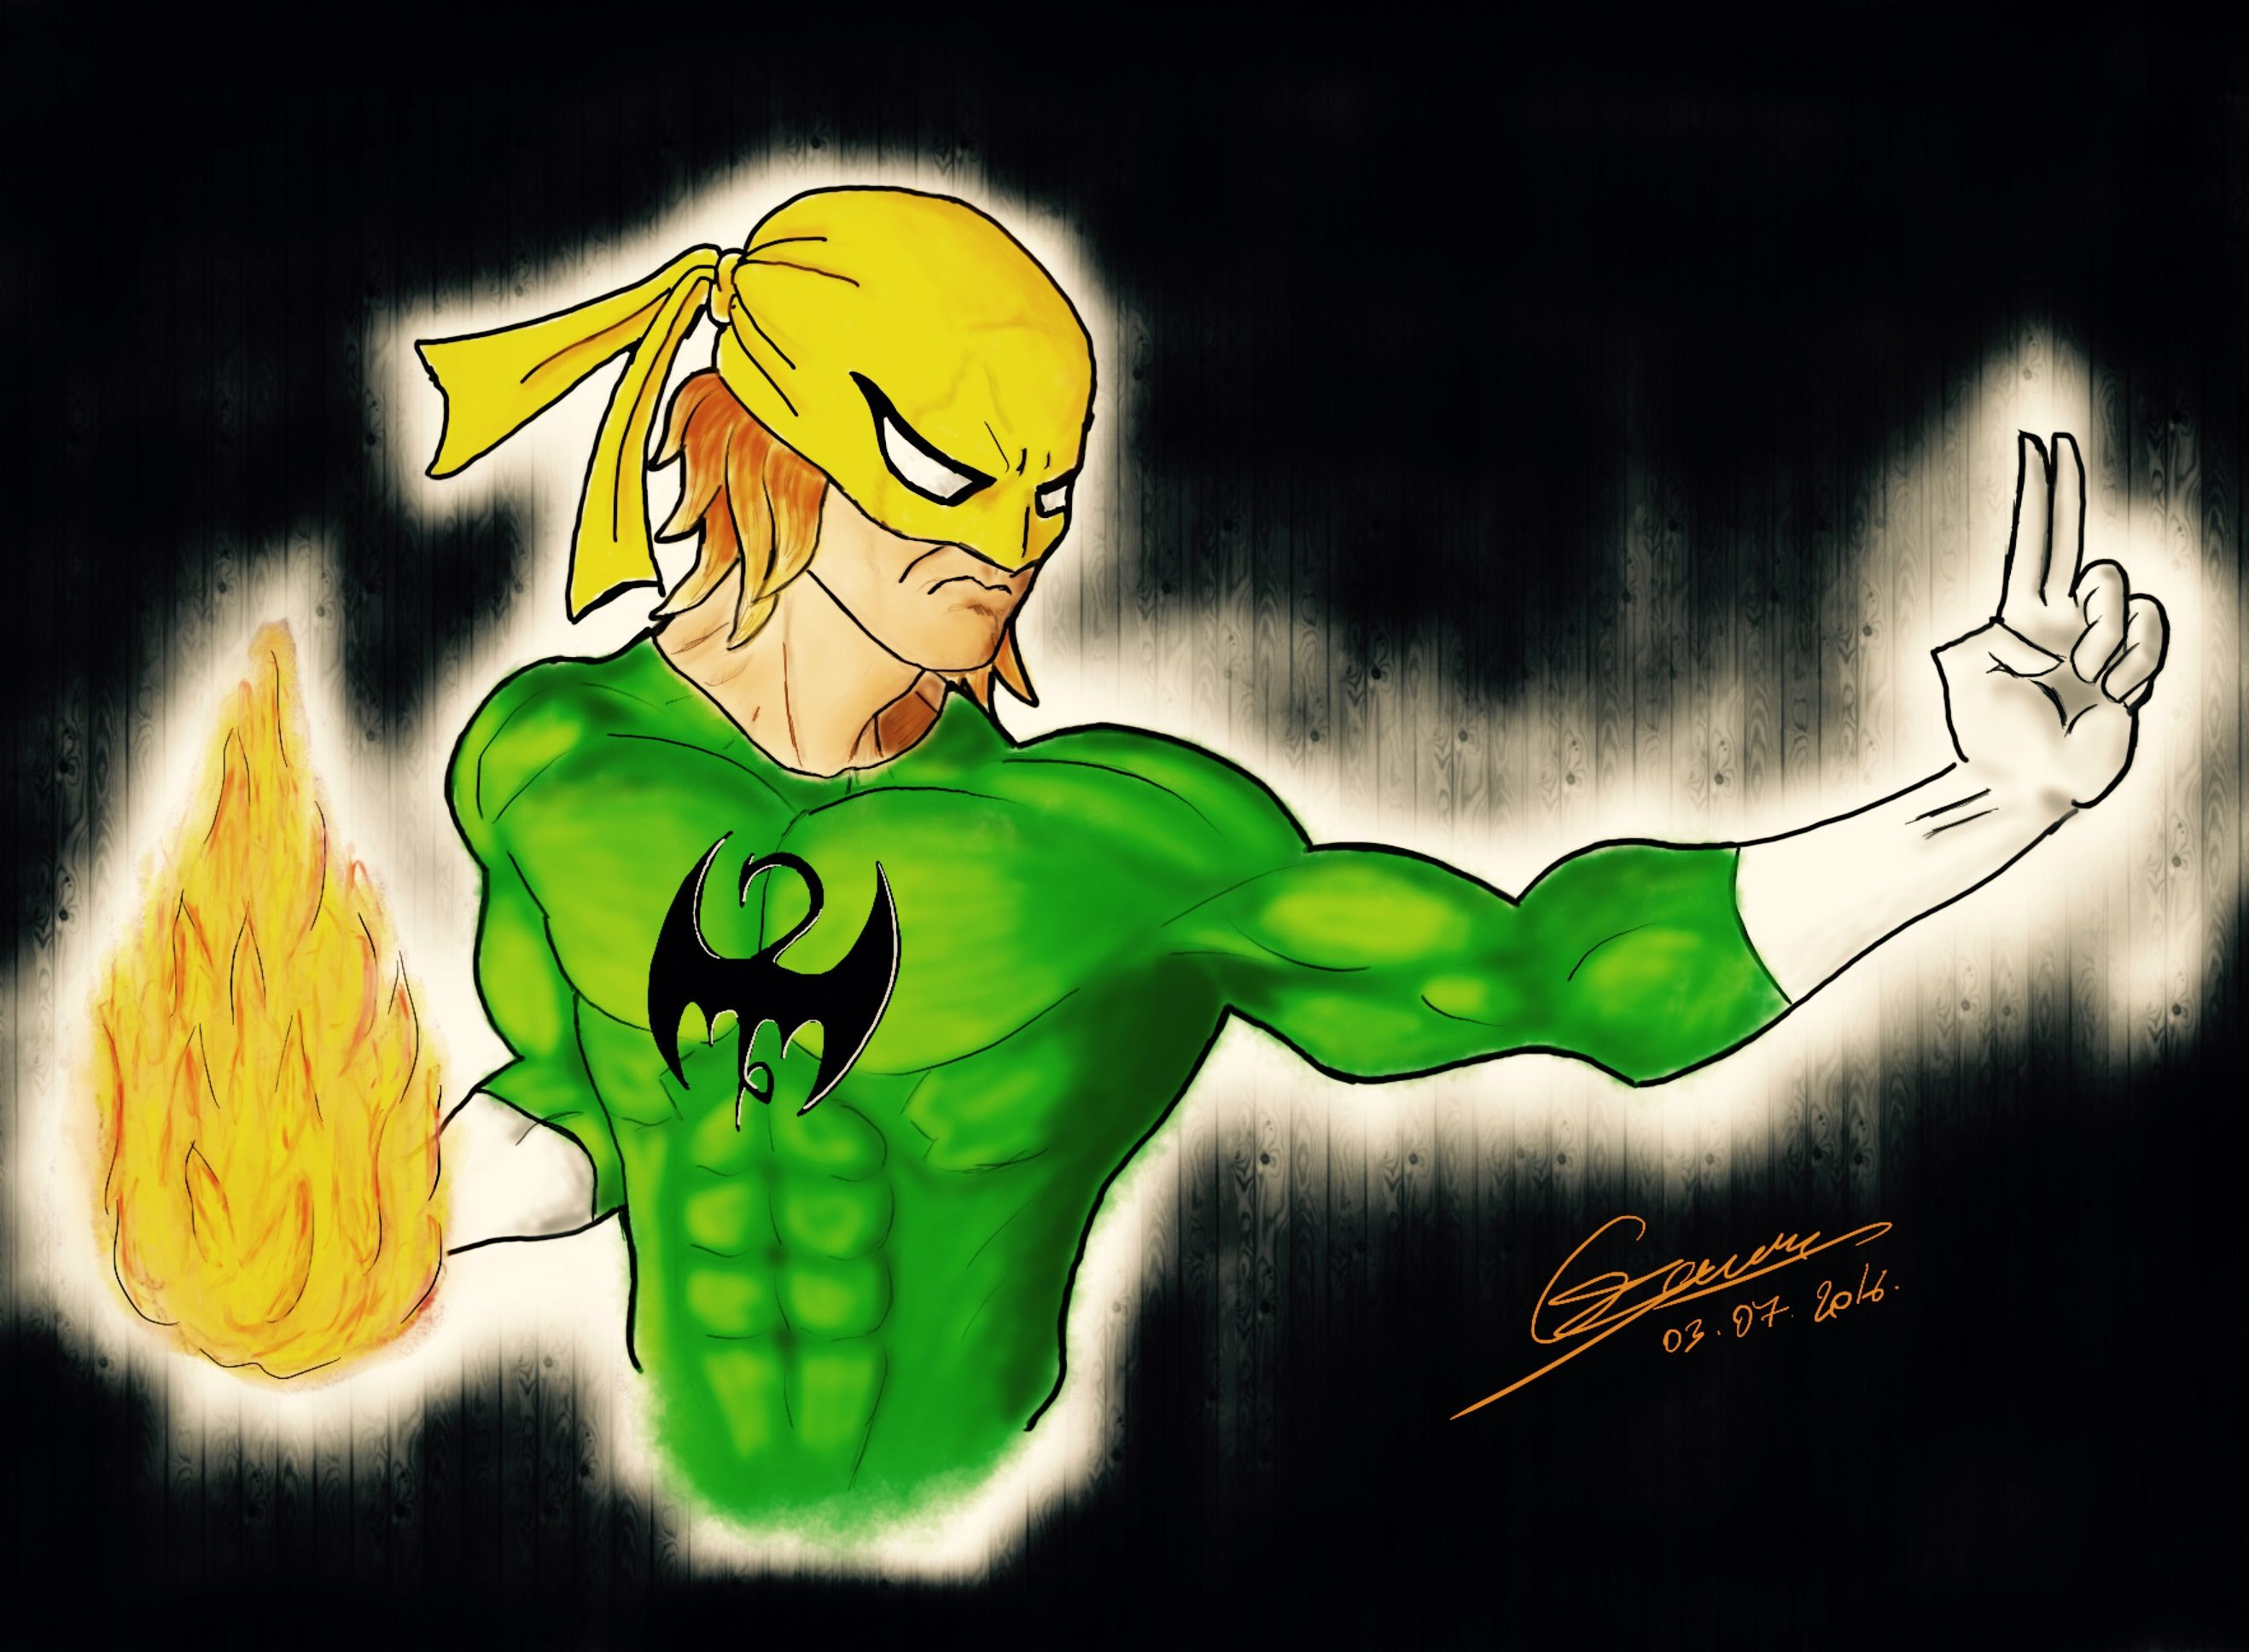 Iron fist (first attempt at digital drawing) with procreate on iPad pro